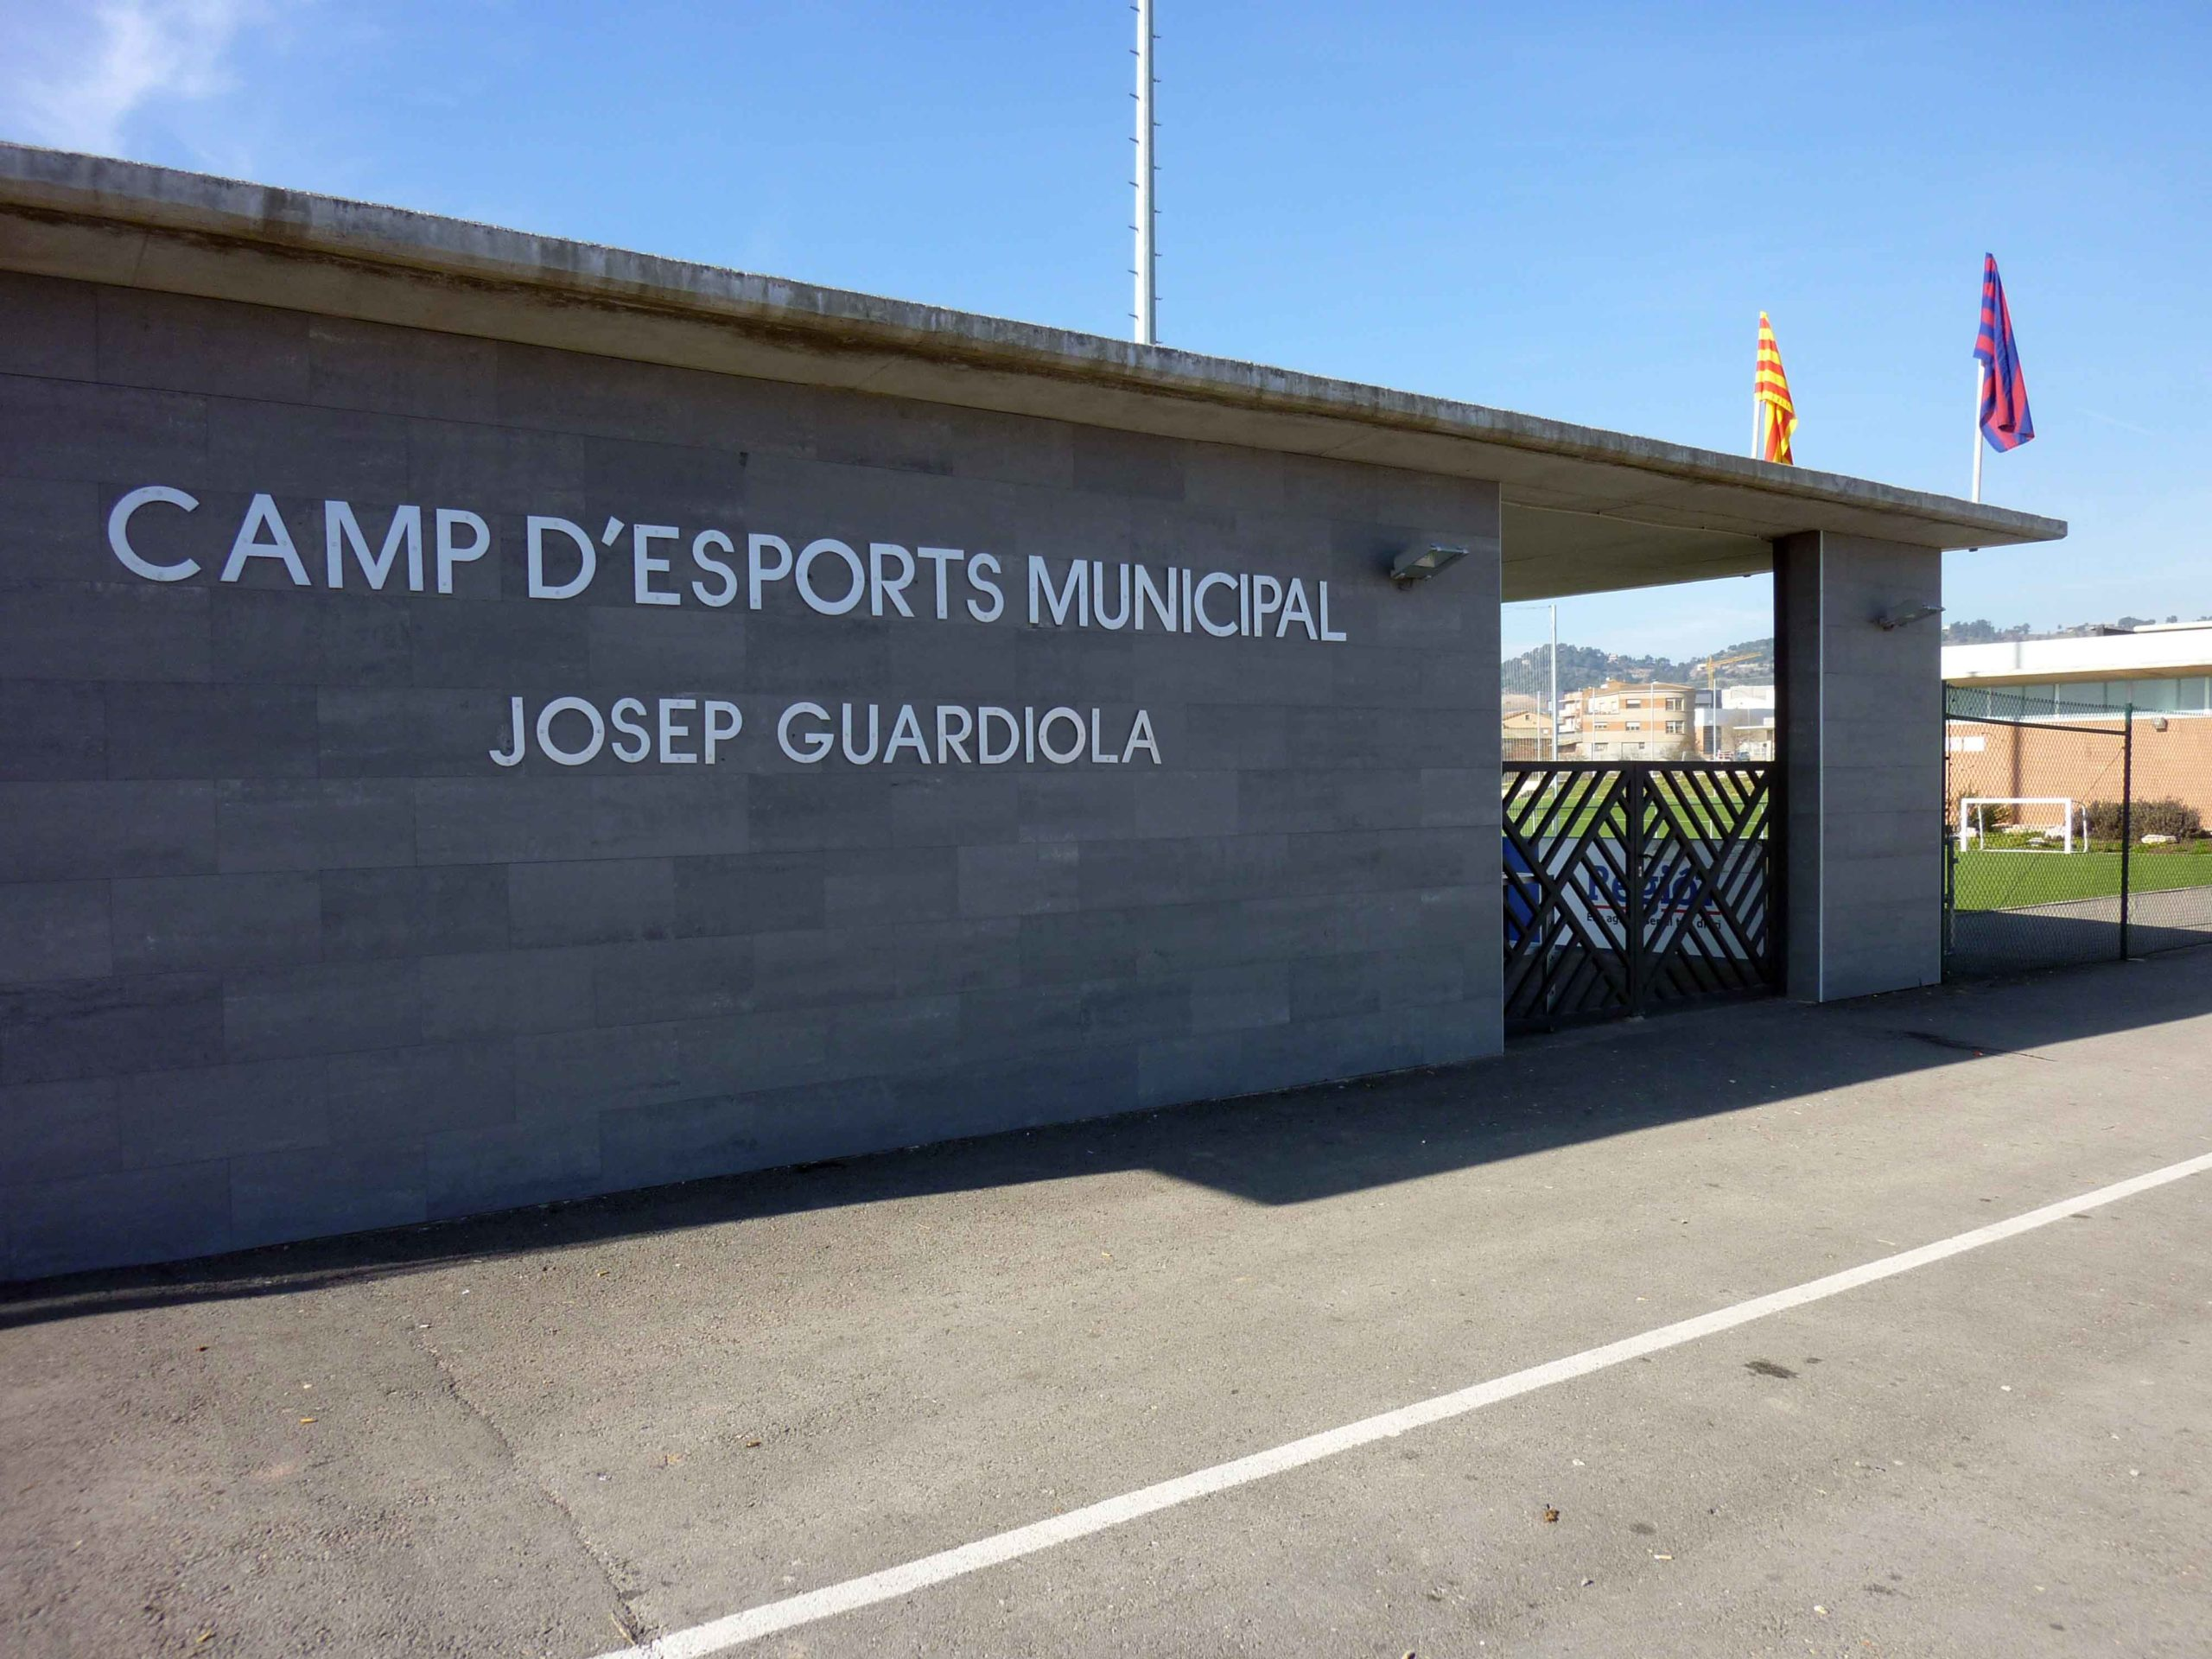 The sports complex in Santpedor named after Pep Guardiola